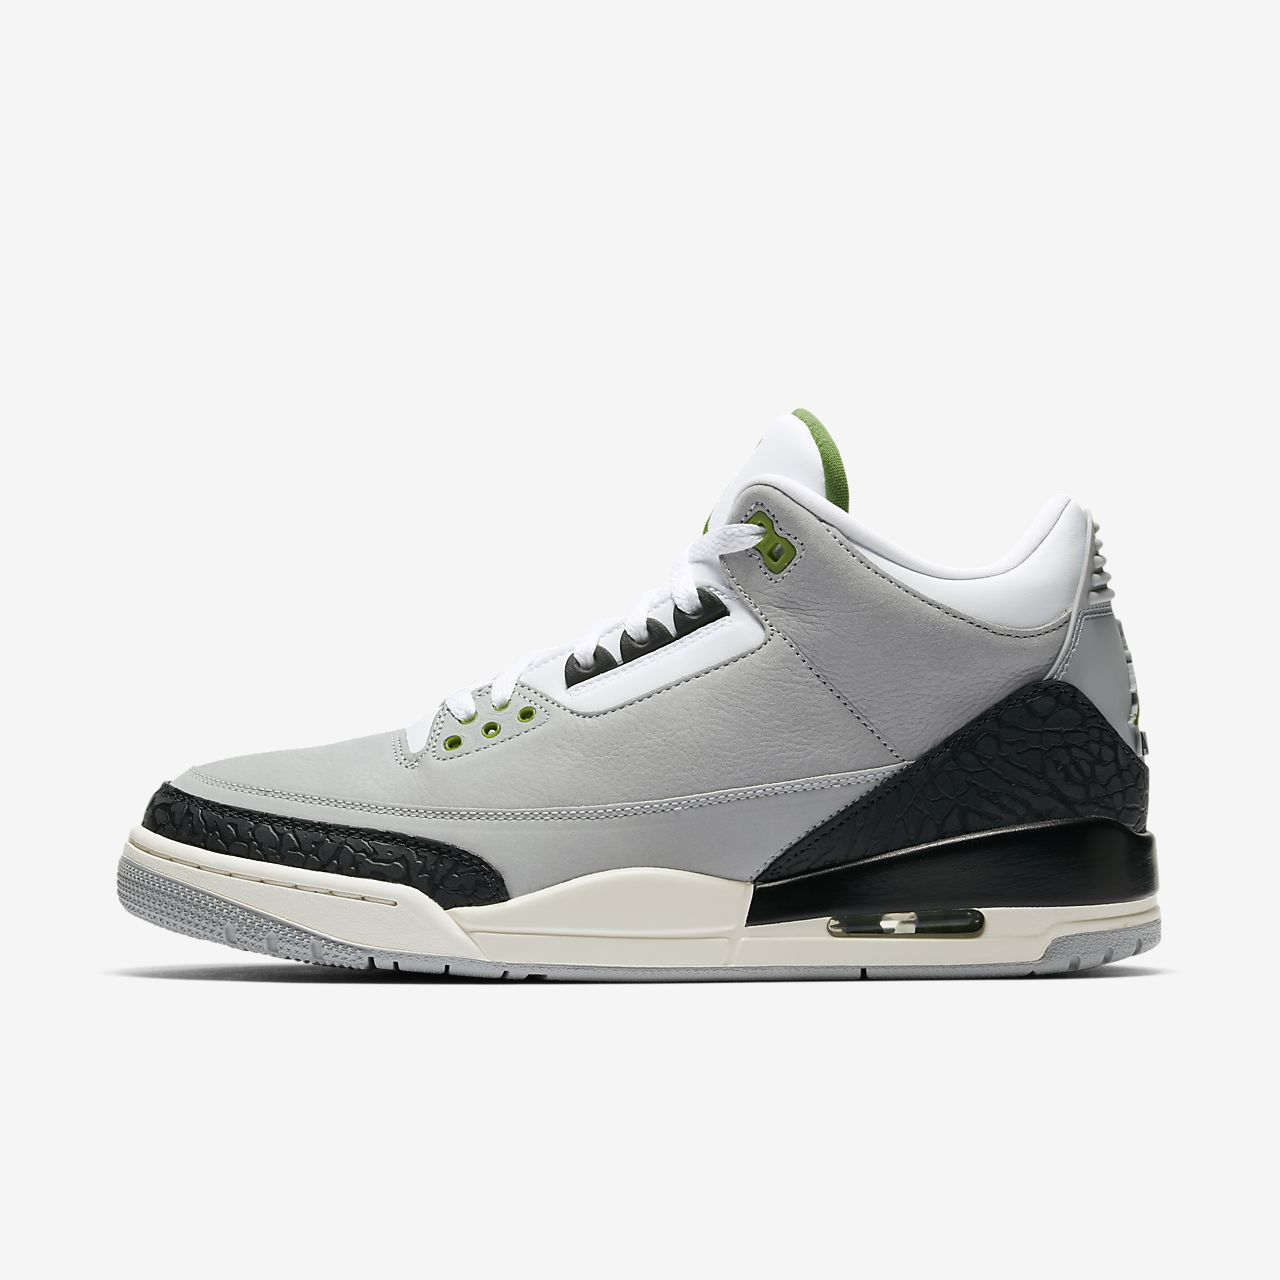 c38f5f8b3c36a1 Air Jordan 3 Retro Men s Shoe. Nike.com GB